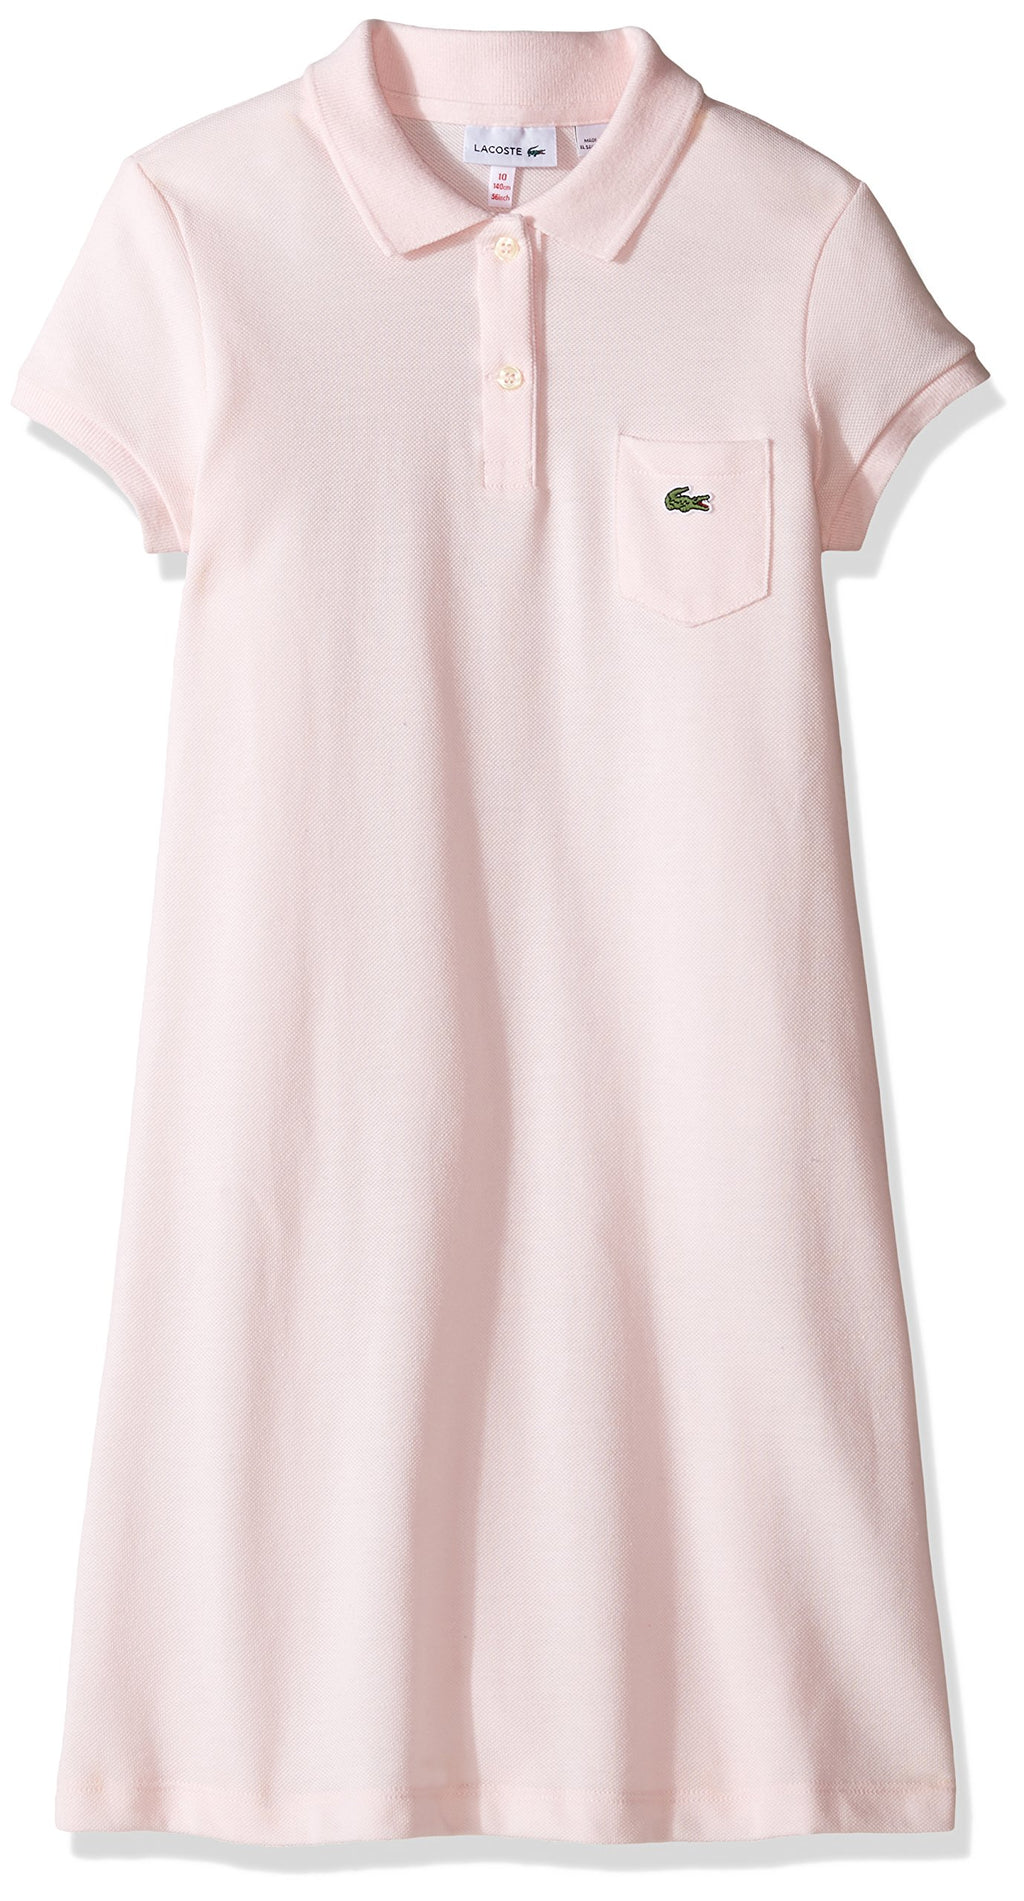 Lacoste Girls' Big Classic Pique Dress with Pocket